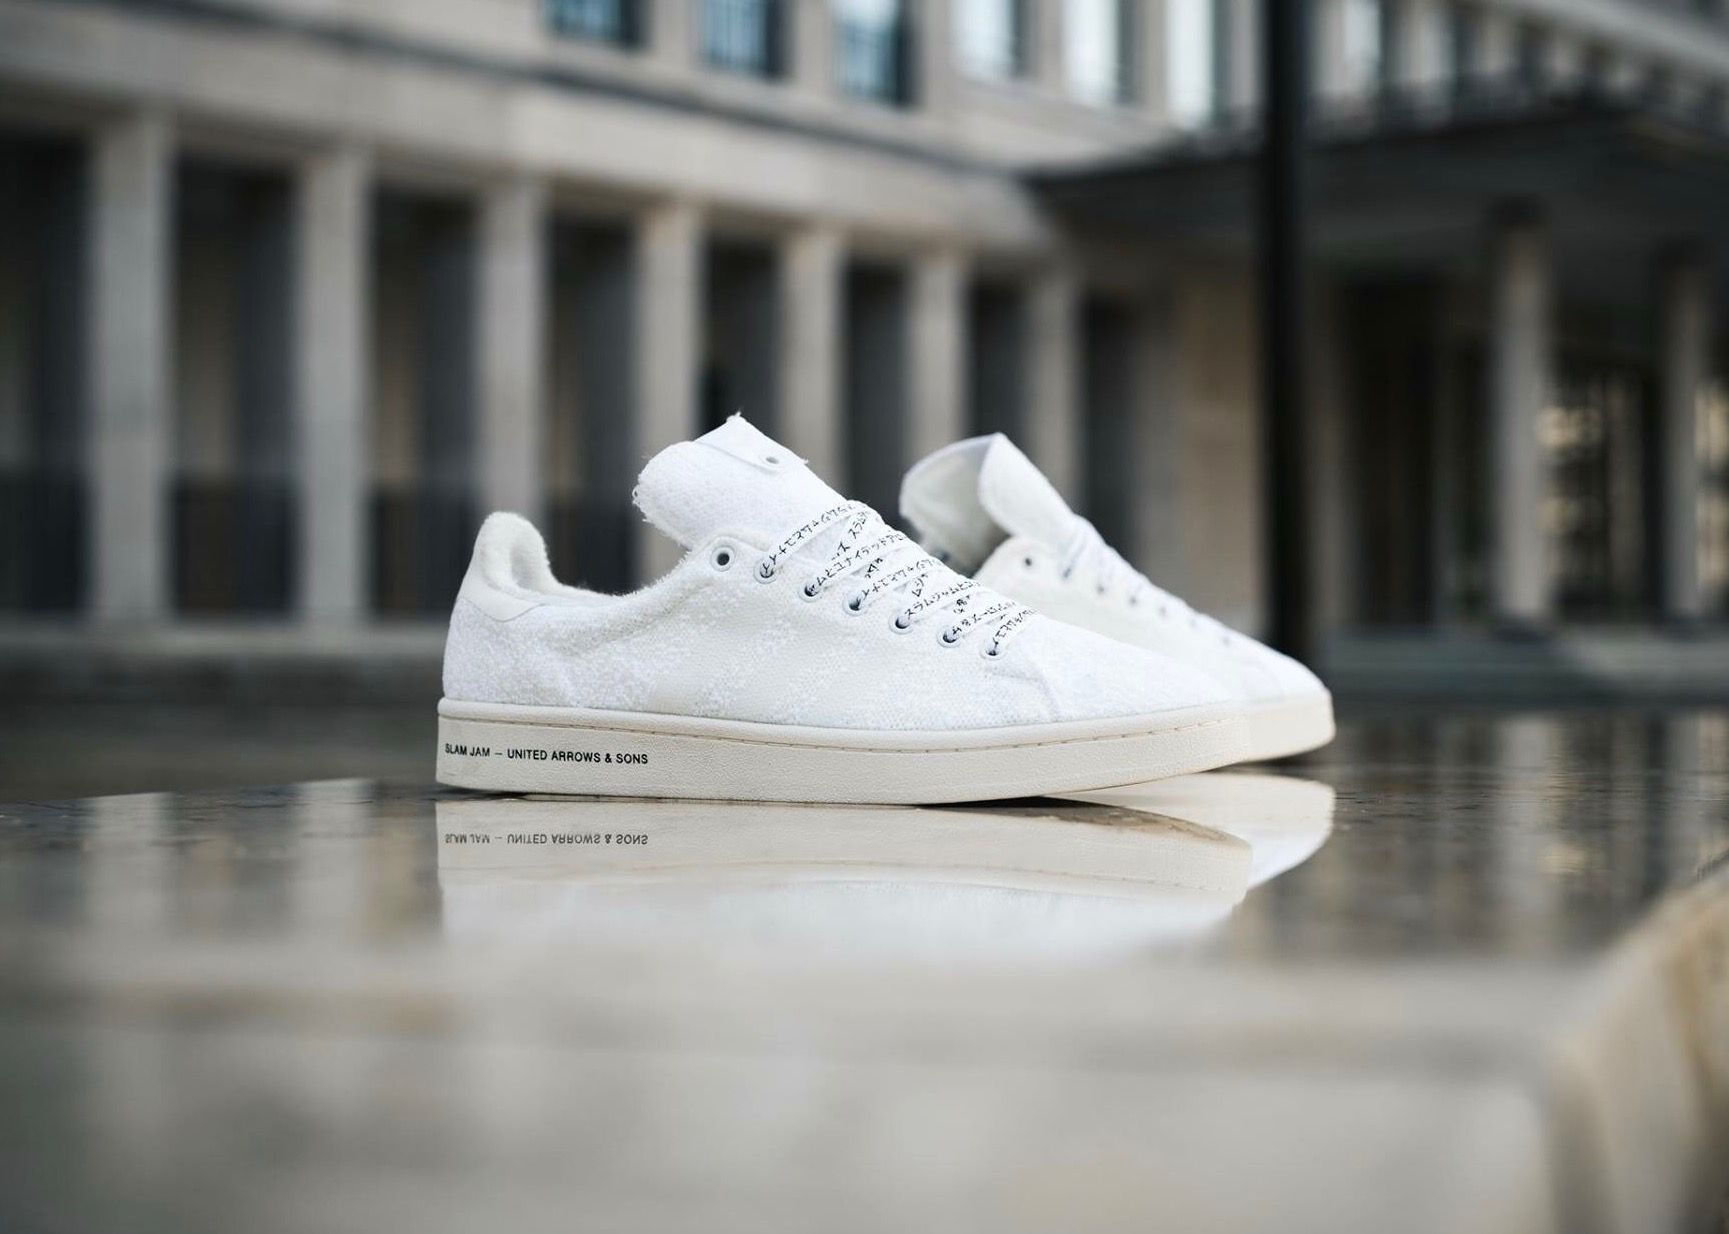 Slam JAM X United Arrows & Sons x Adidas Consortium Stan Smith